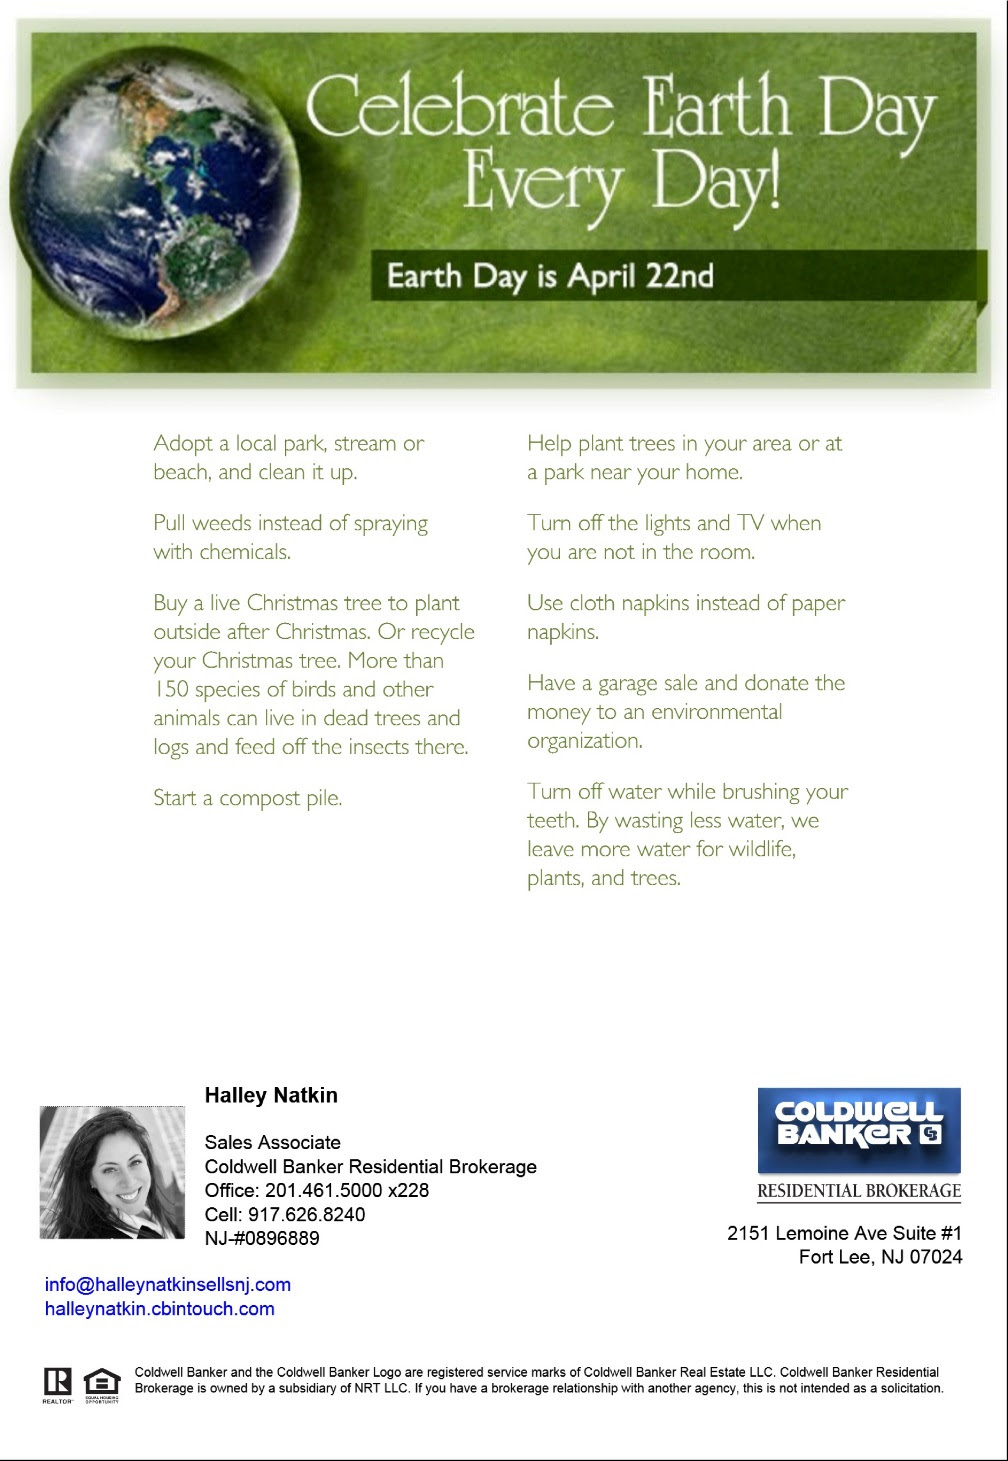 Celebrate Earth Day every day!